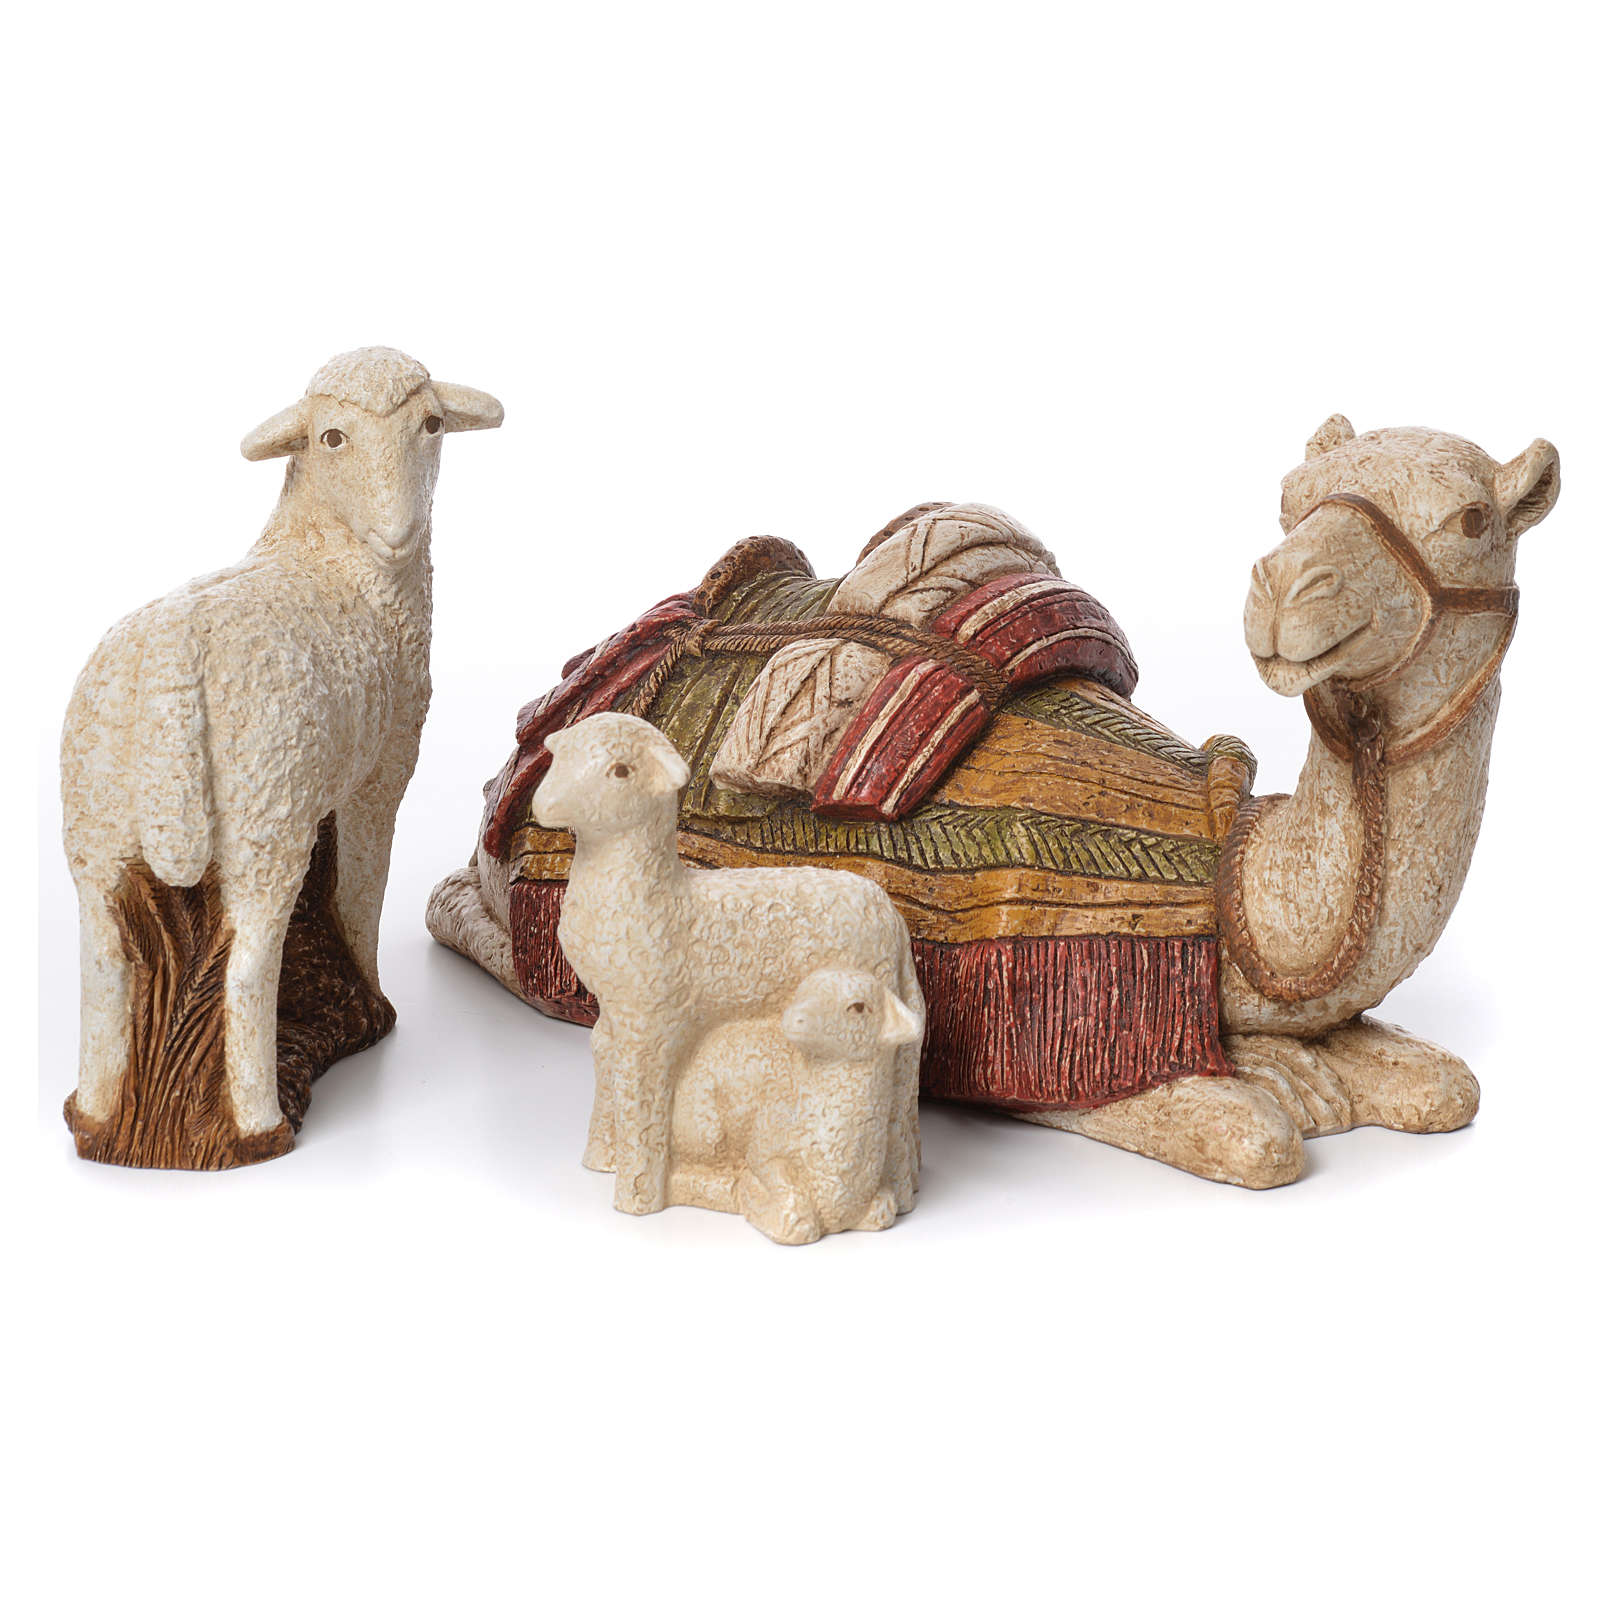 Rural Nativity Scene by Behleem nuns 4